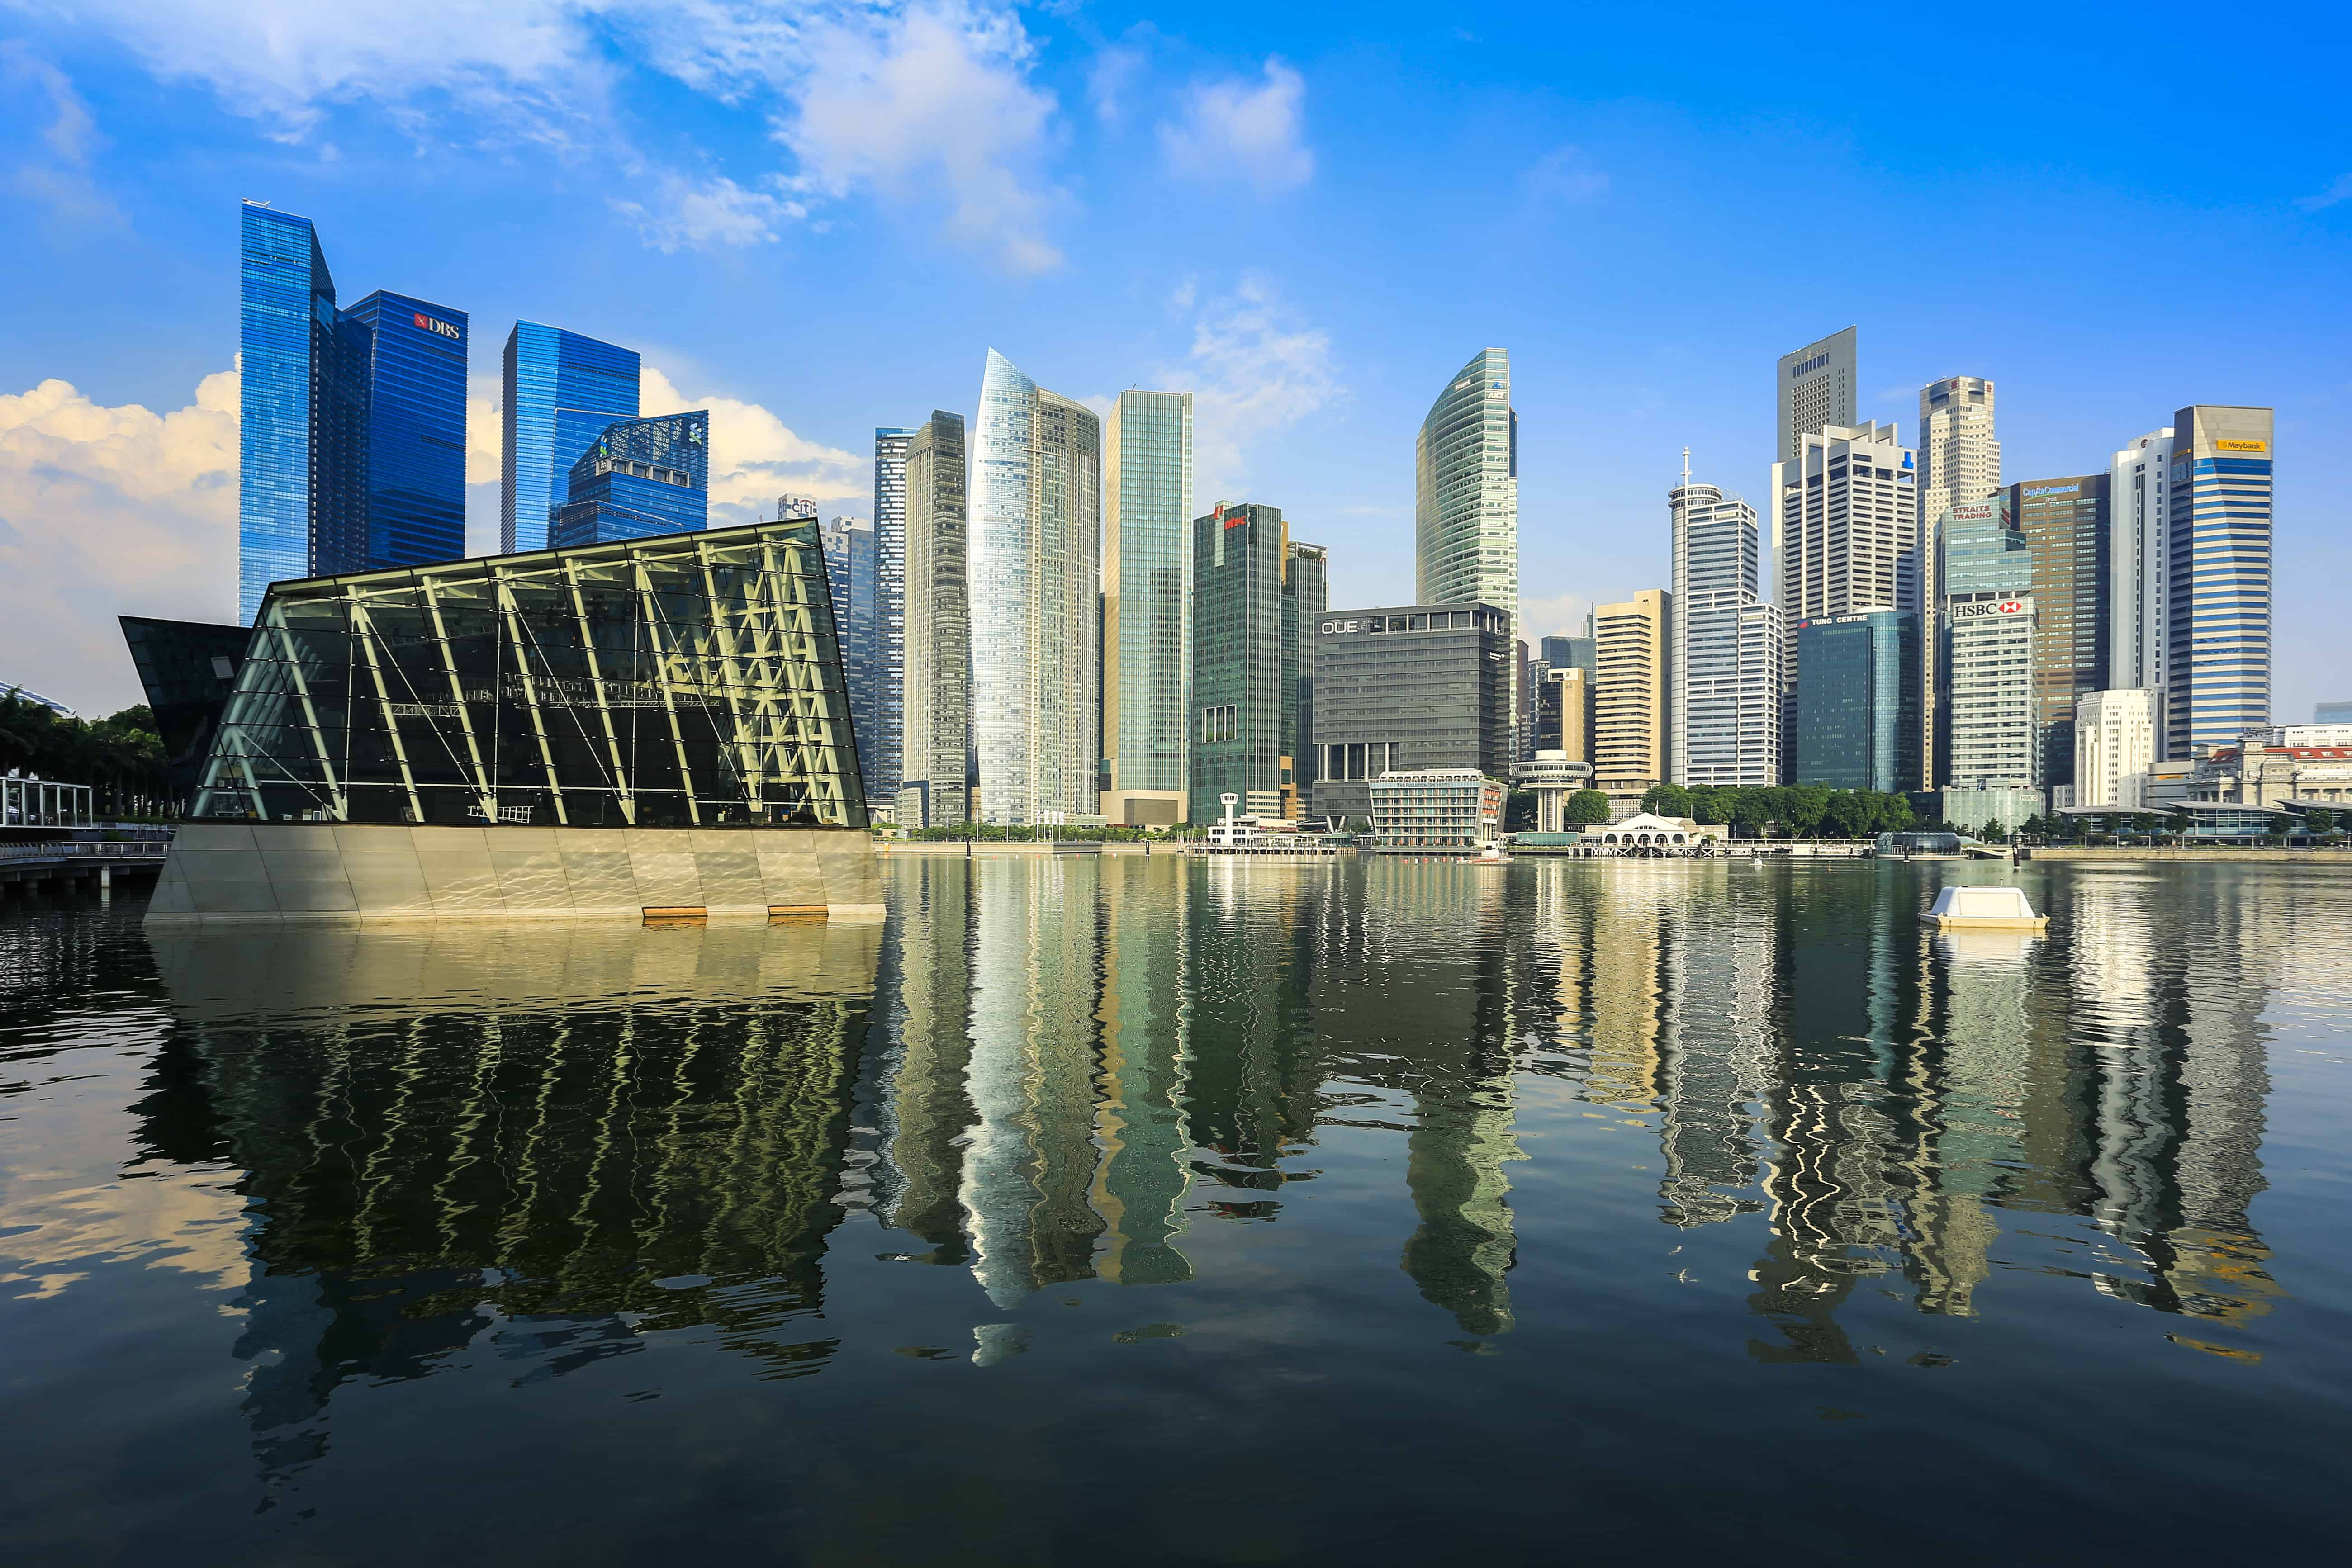 Considerations to Make Before Taking a Trip to Singapore